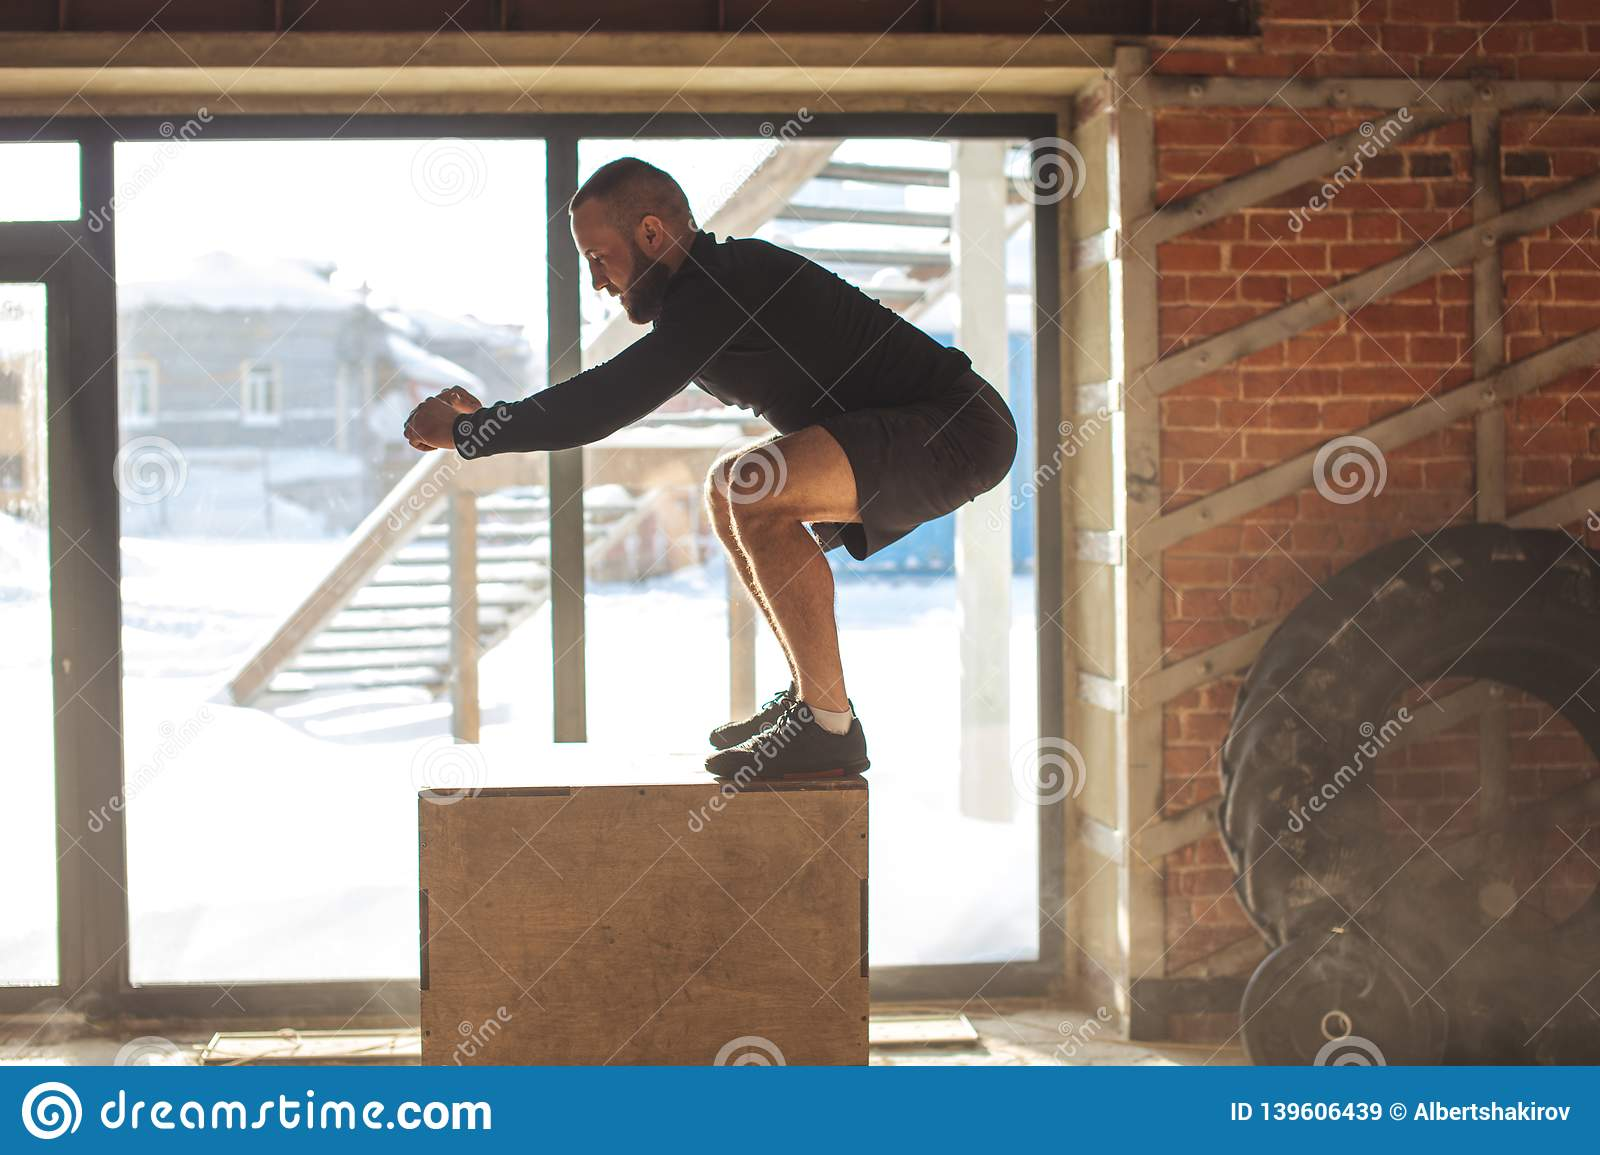 Caucasian Athletic Man Performing Plyo Box Jump Exercise